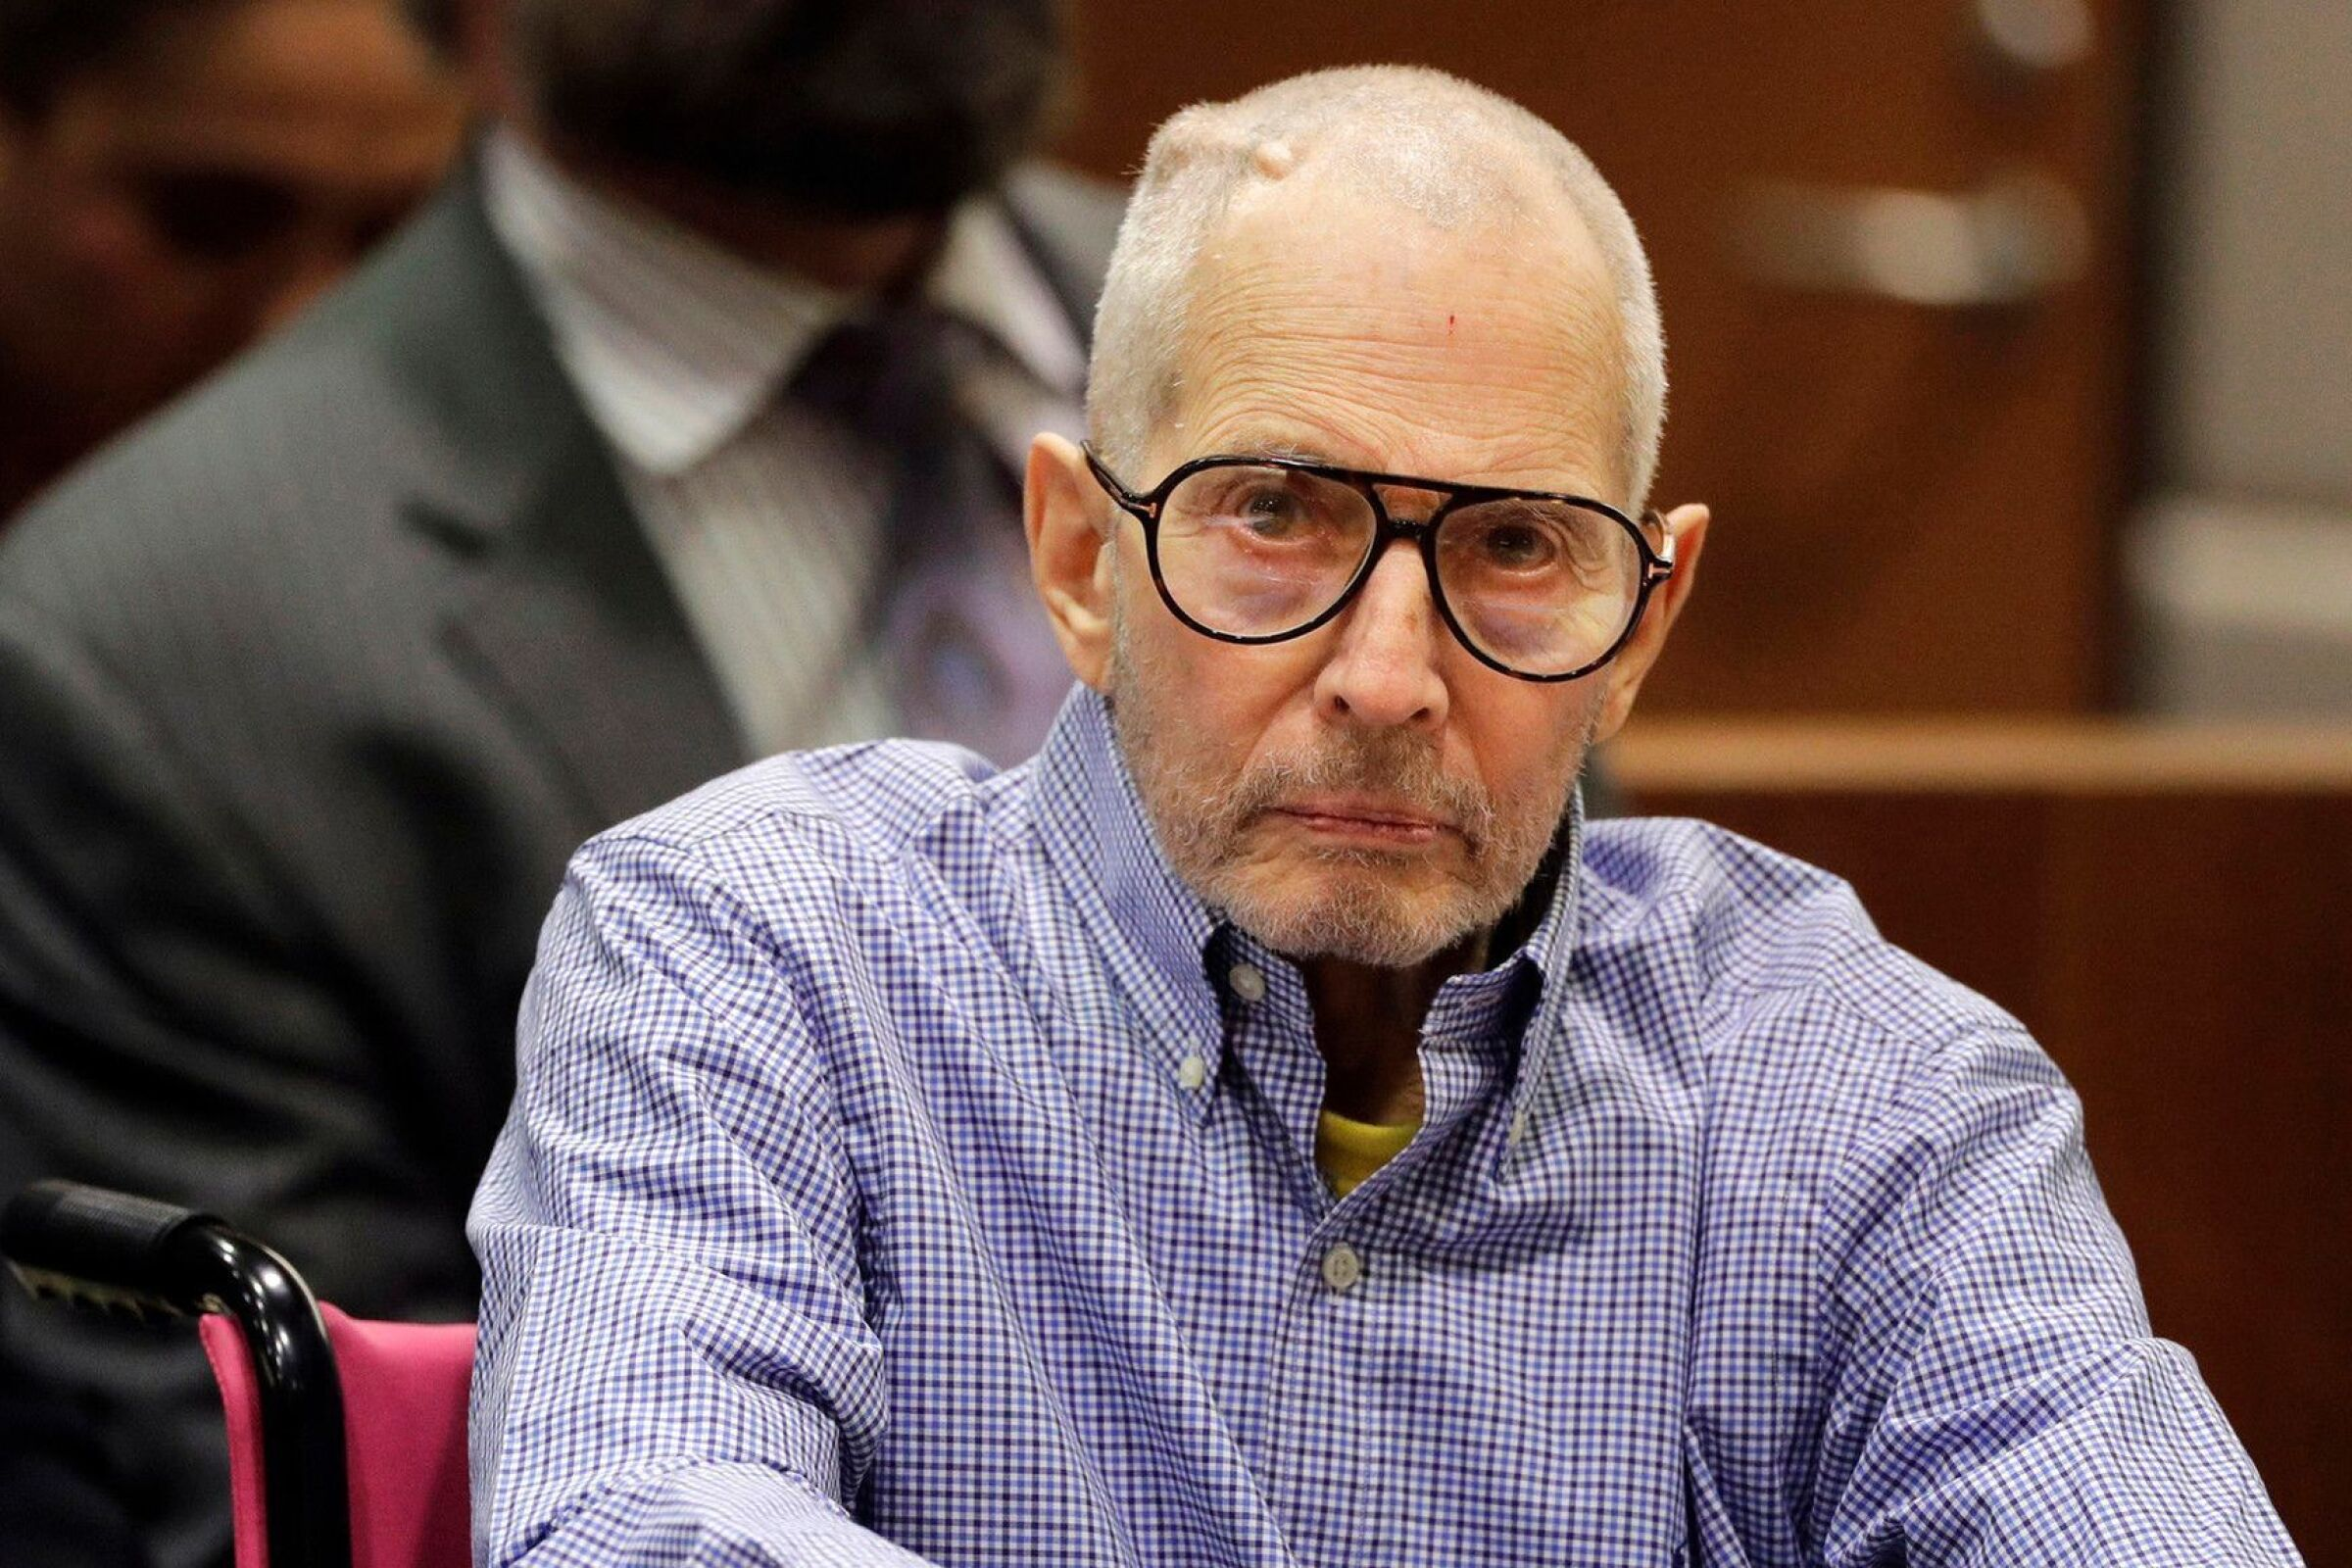 Real estate heir Robert Durst at a 2016 court hearing in L.A.